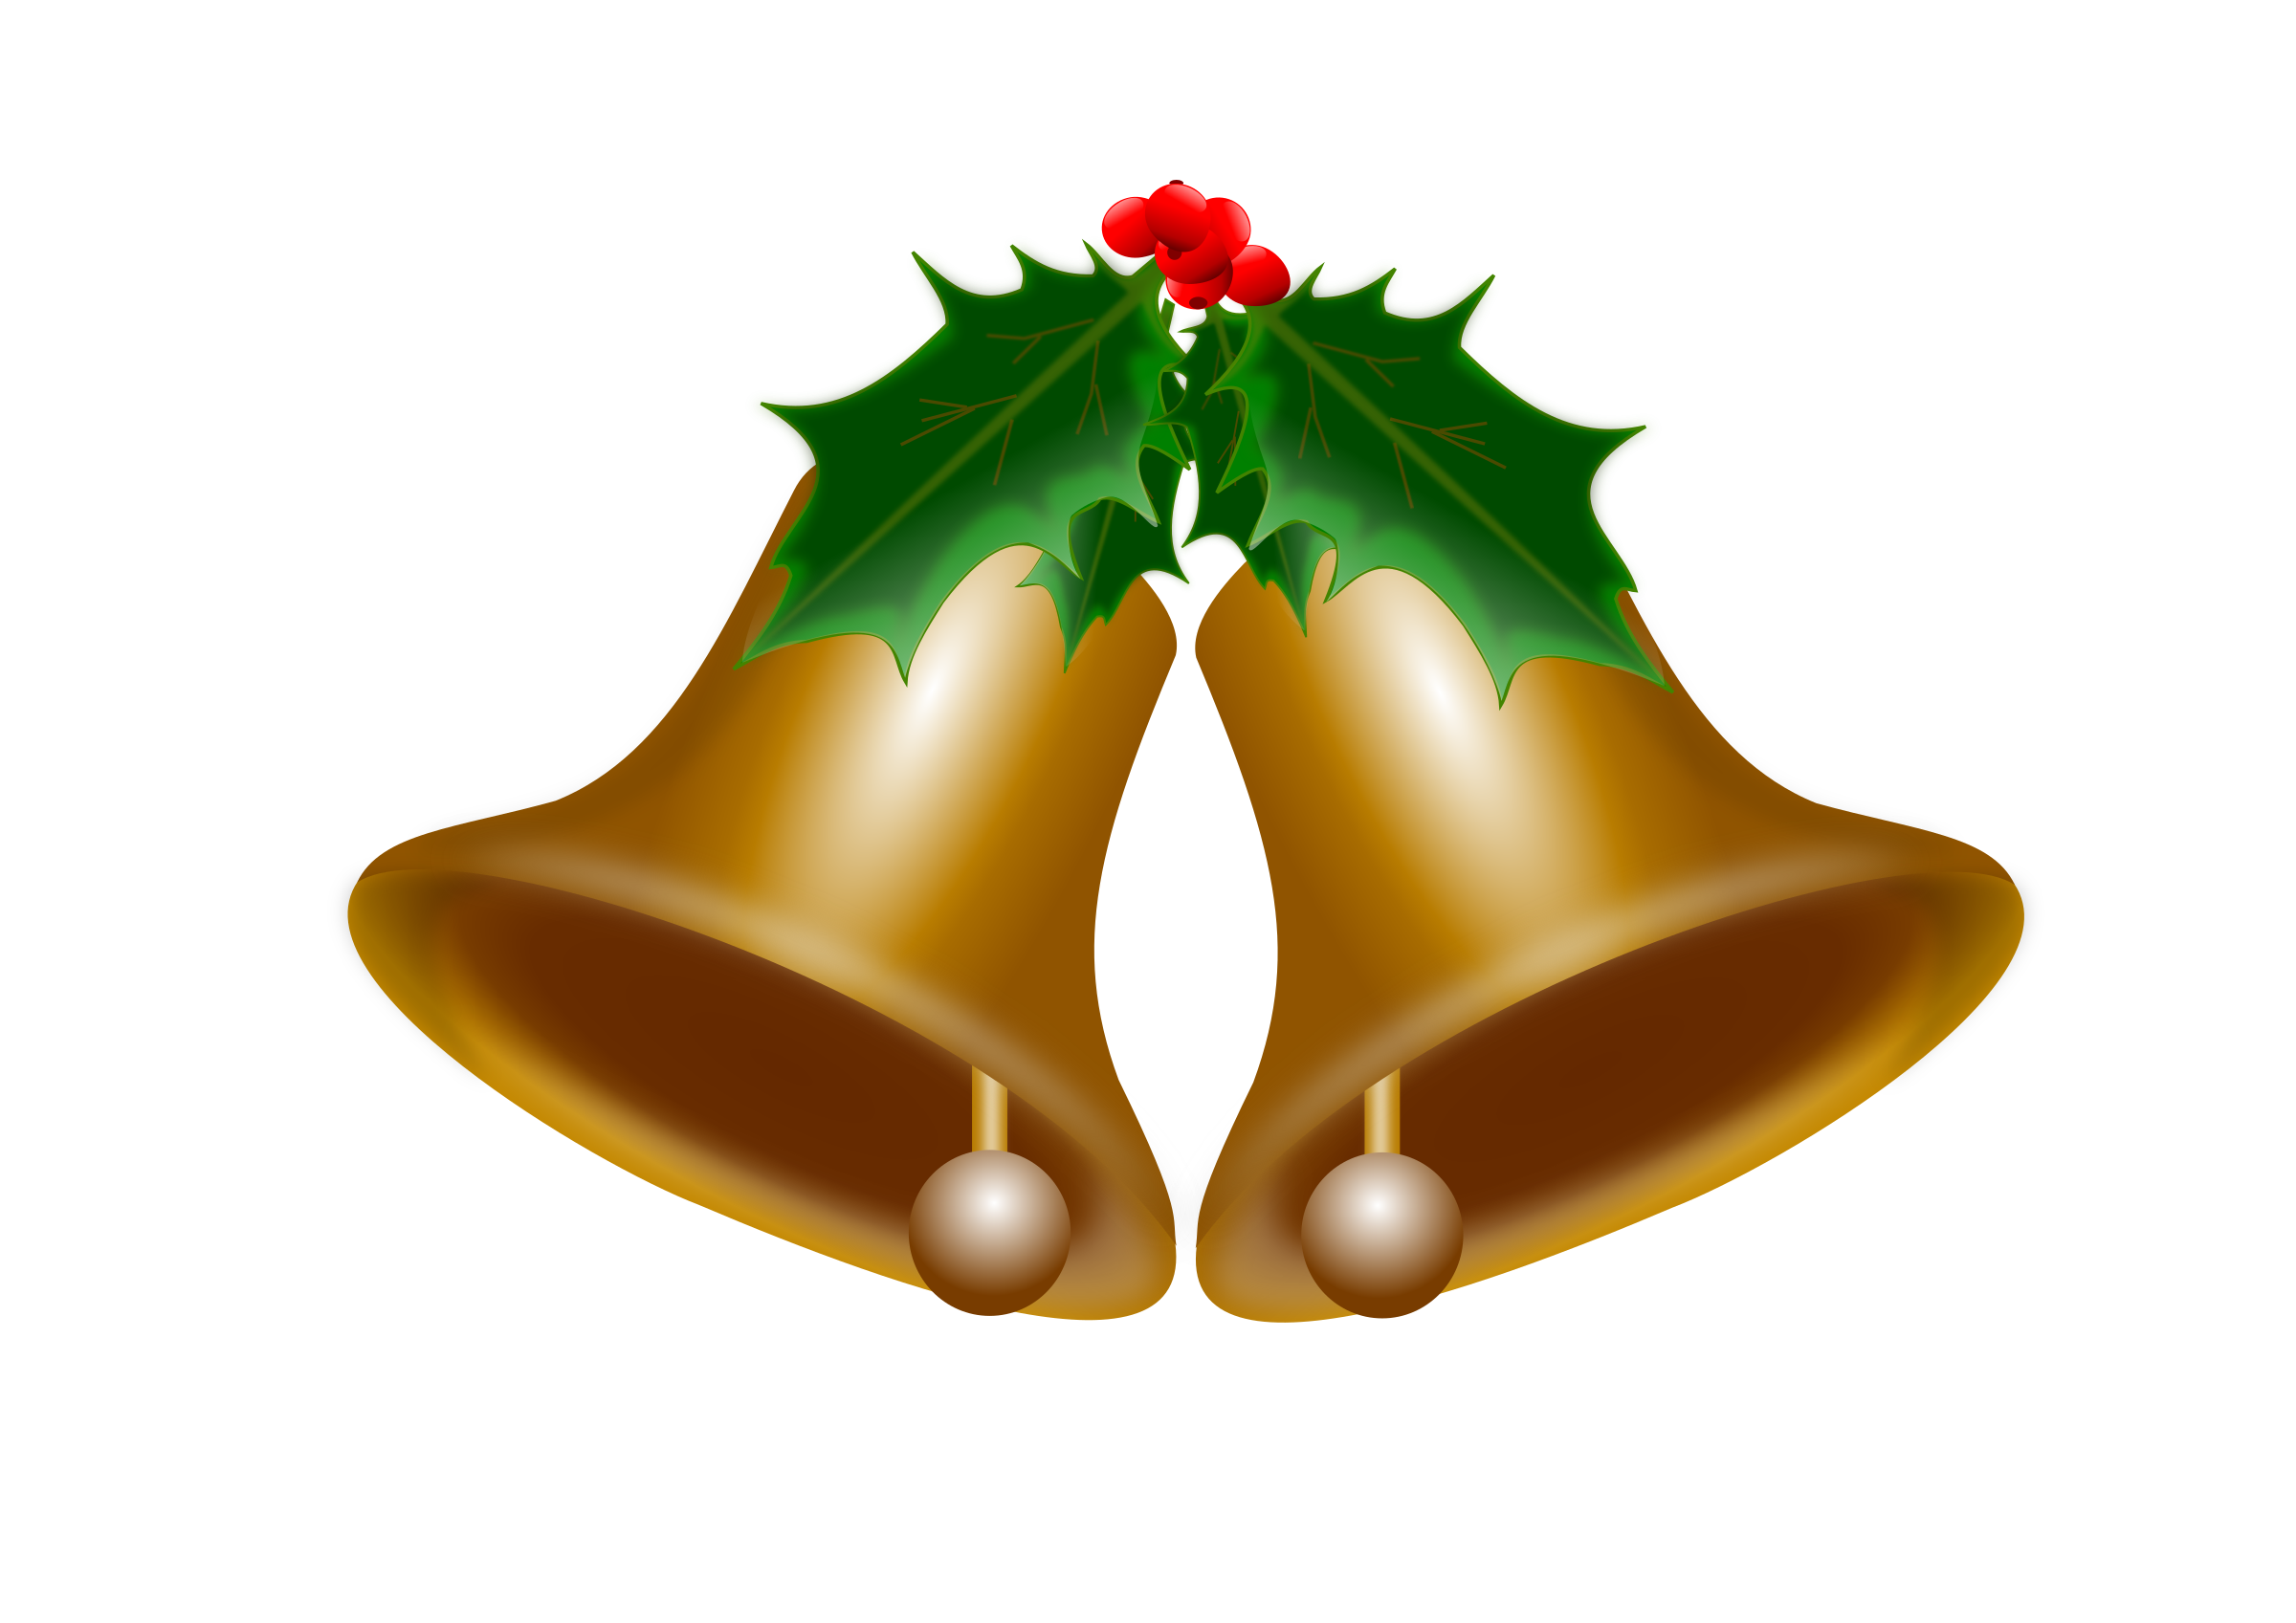 bells of Christmas by dashell